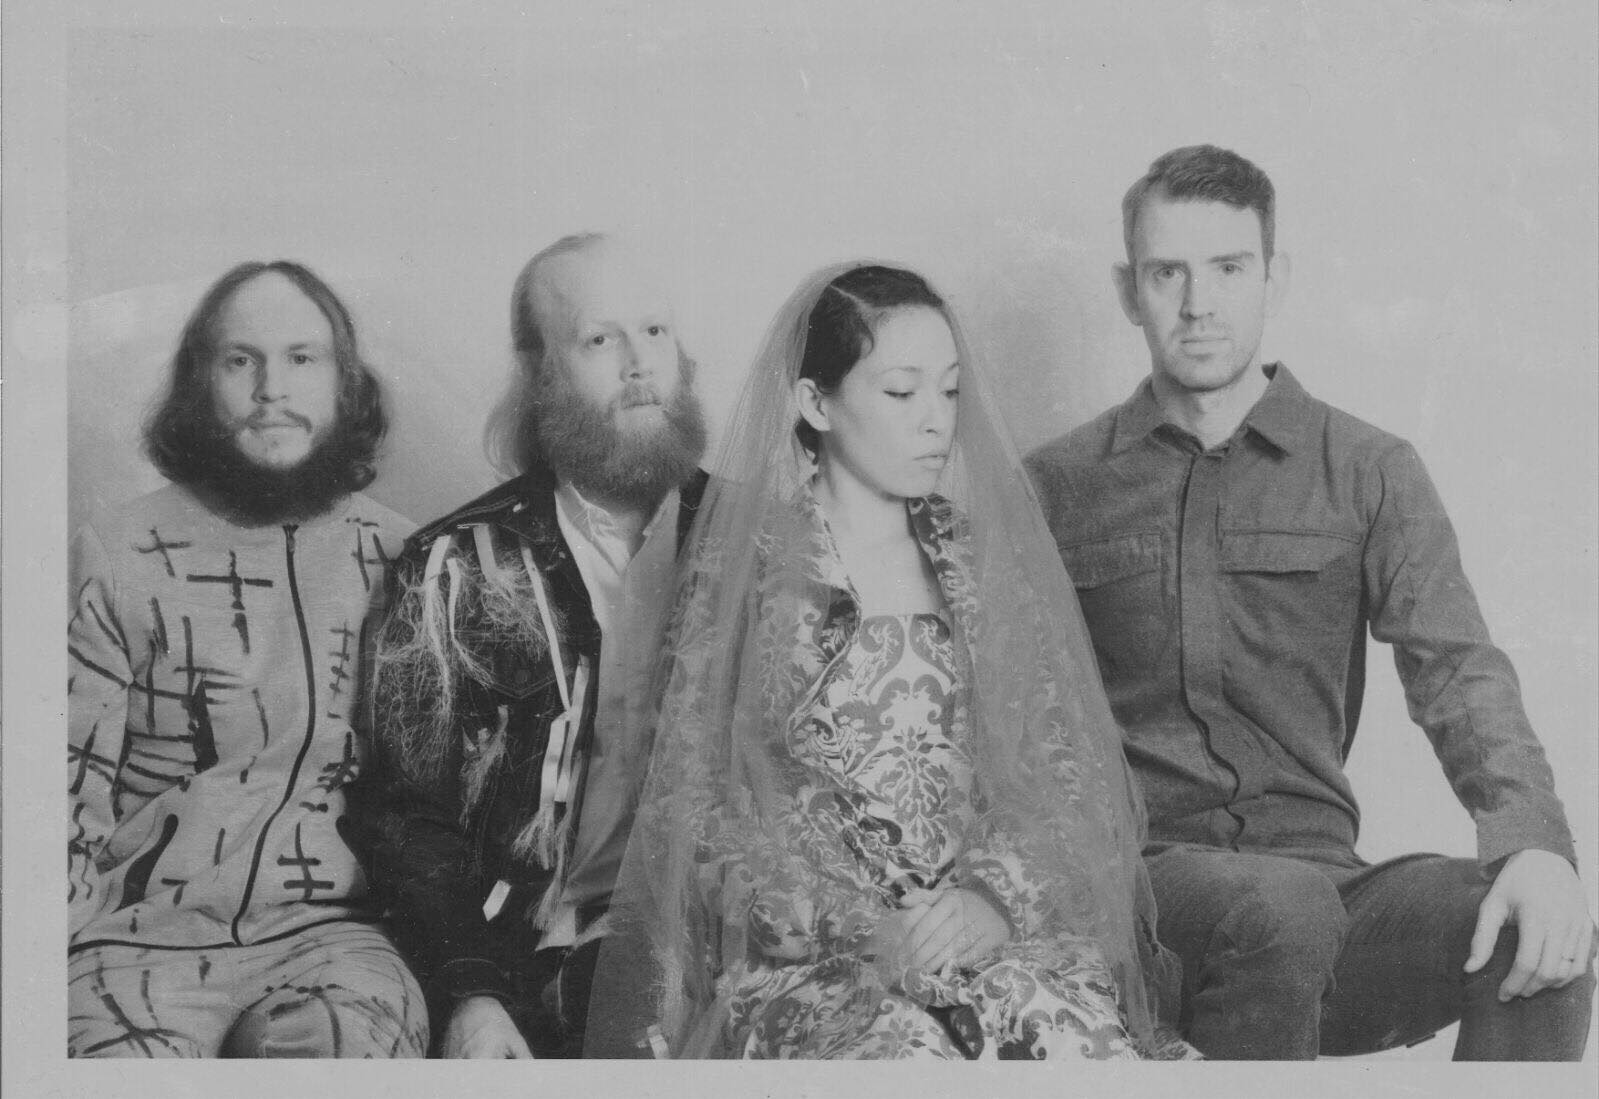 Little Dragon's new album 'Season High' set to arrive in April!